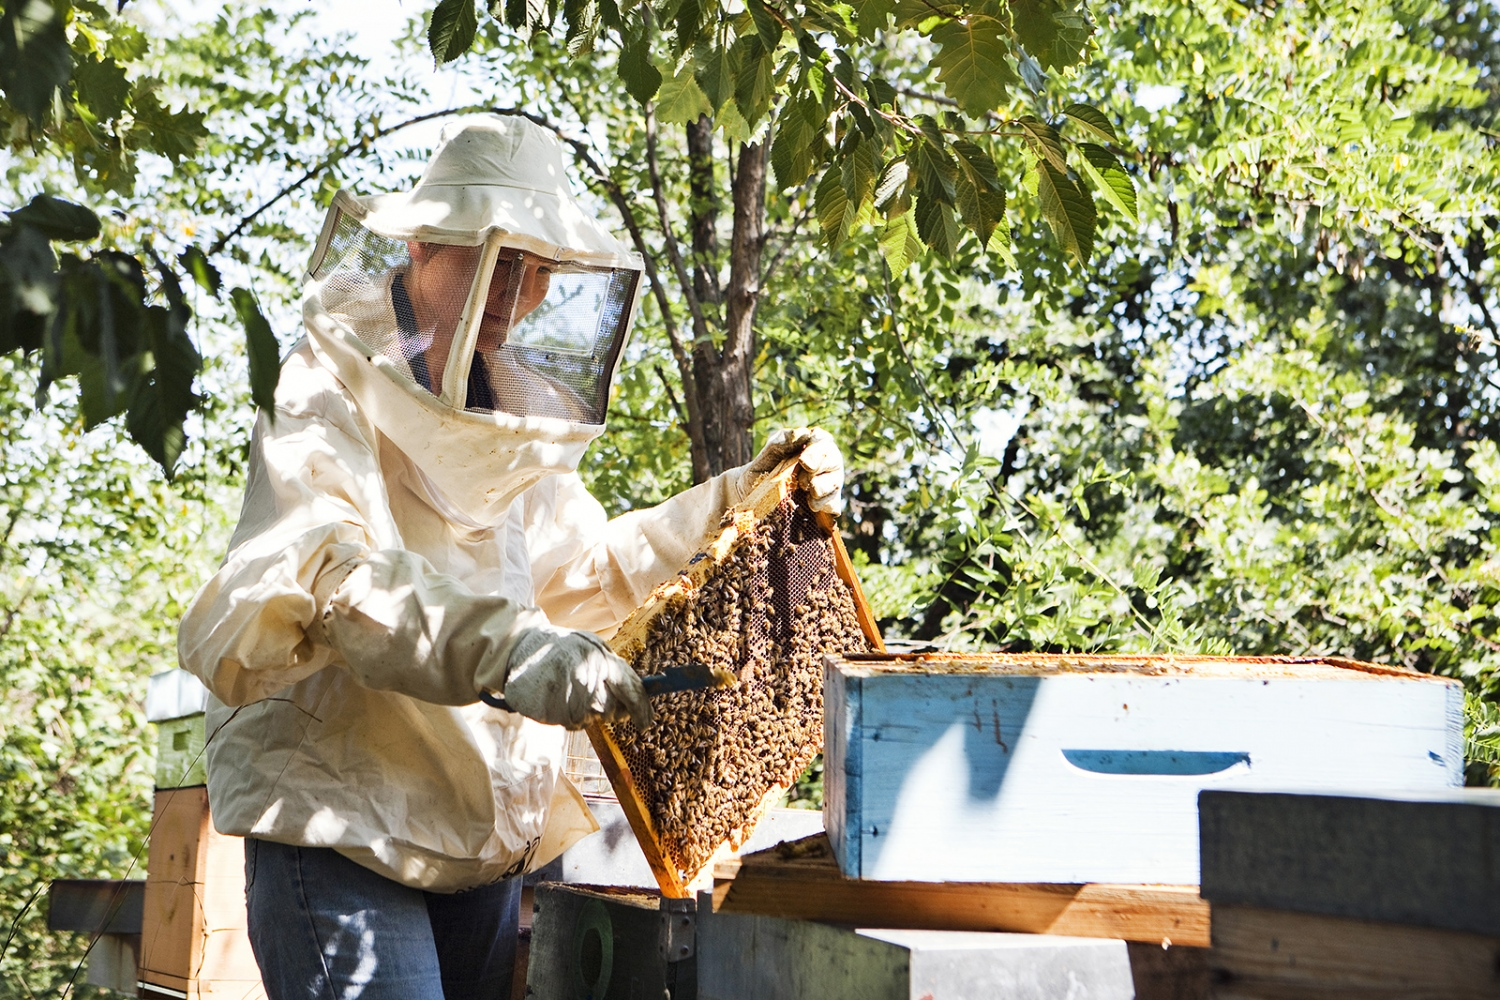 beekeeper in Damanhur, North of Italy